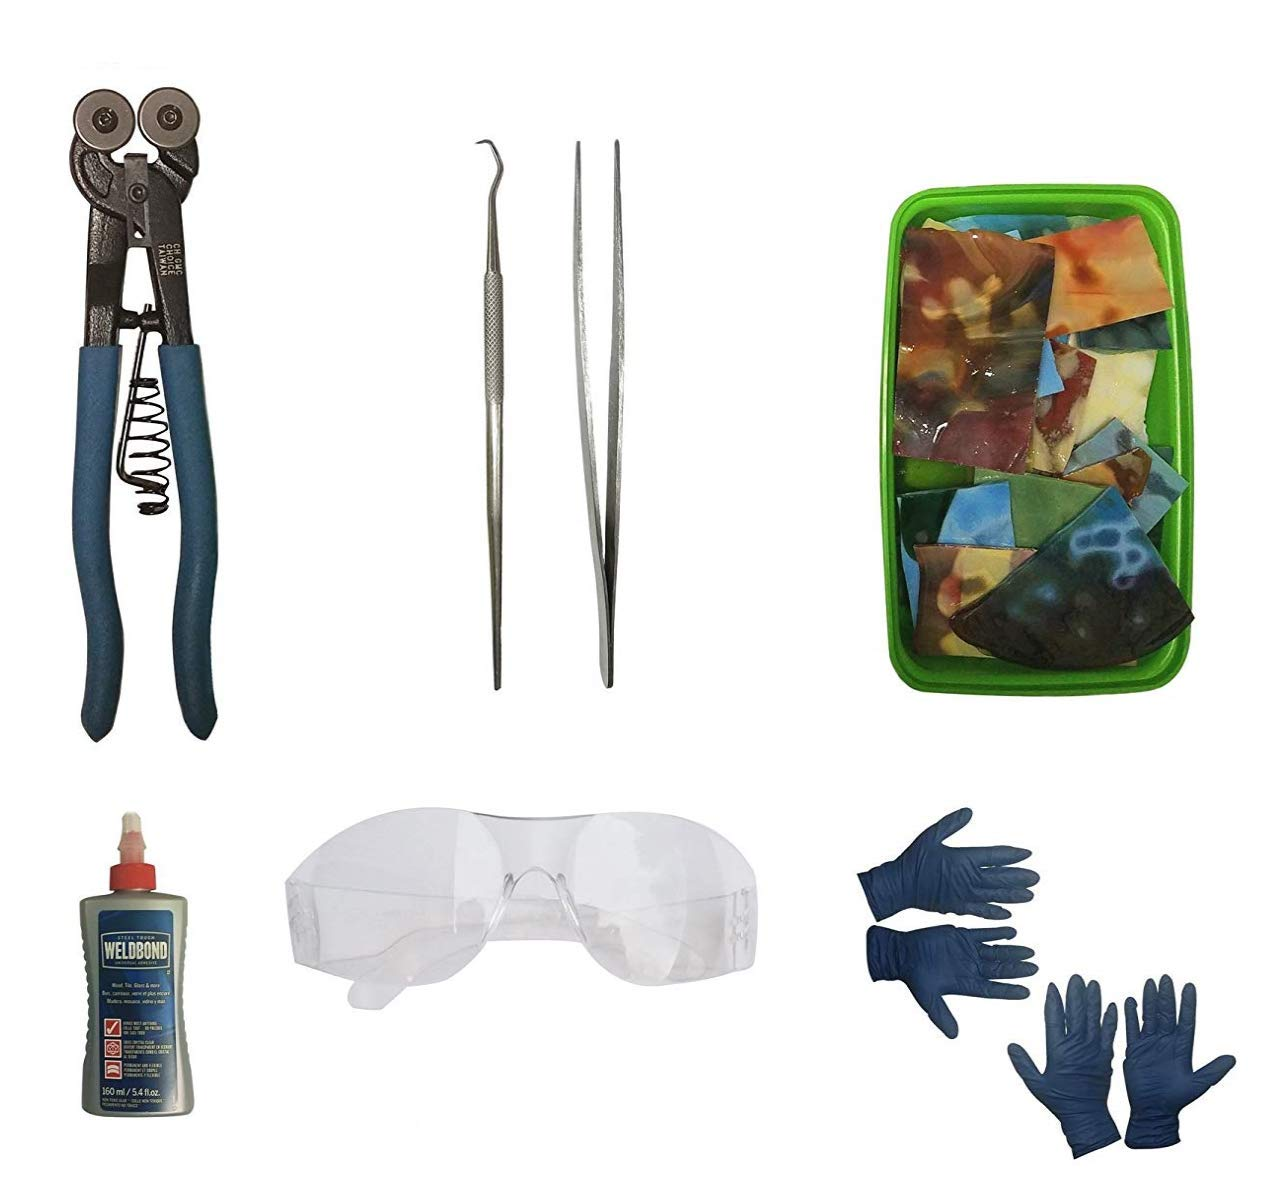 Premium Mosaic Tiles Starter Kit. Includes 3 LBS of our BEAUTIFUL scrap glass, Carbide Dual Wheel Mosaic Cutter, Weldbond, Safety Glasses and Mosaic Tools. Perfect starter kit for Glass Mosaic